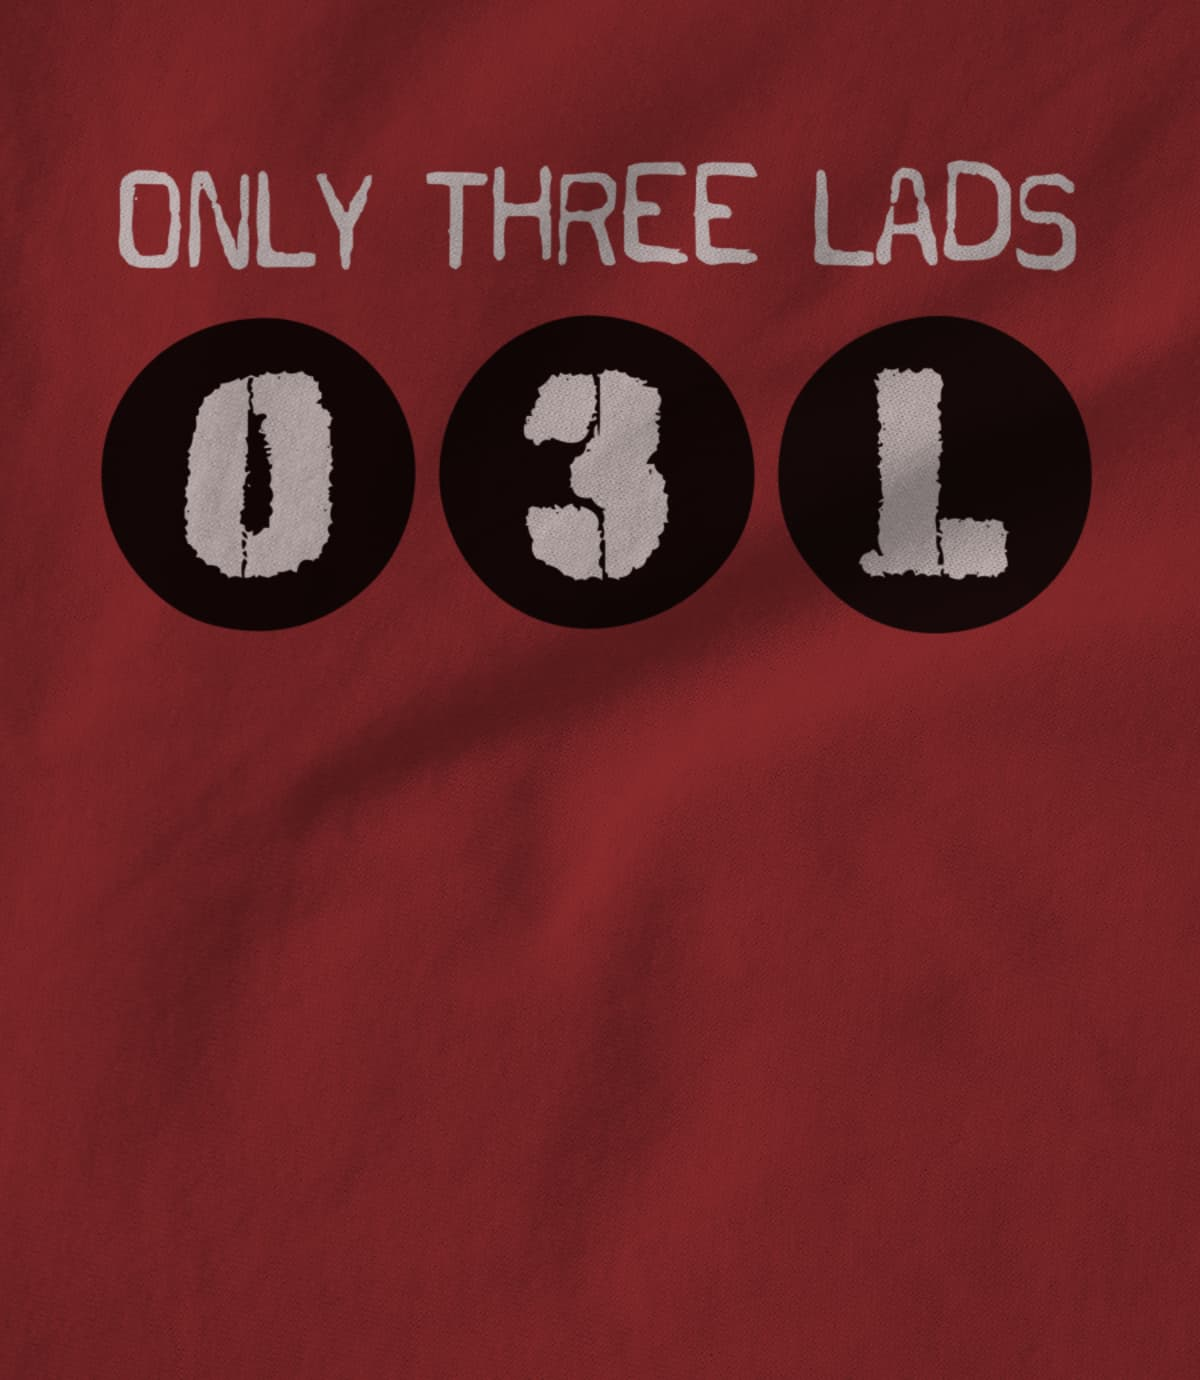 Only three lads o3l podcast   logo design  cardinal red  1579509960